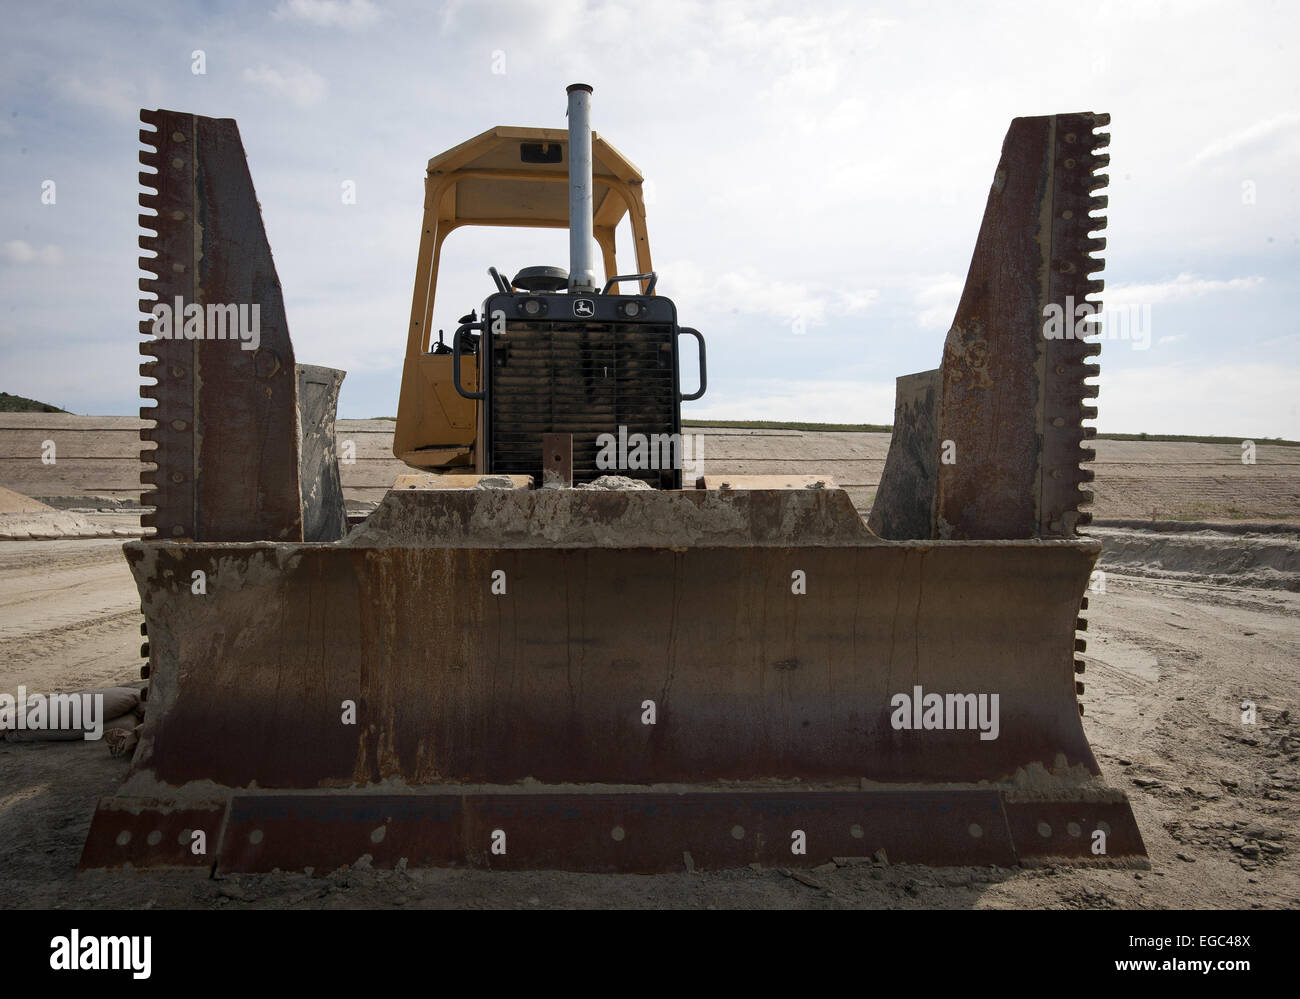 Feb. 21, 2015 - Orange County, California, USA - Heavy construction equipment is used during the first stages of - Stock Image